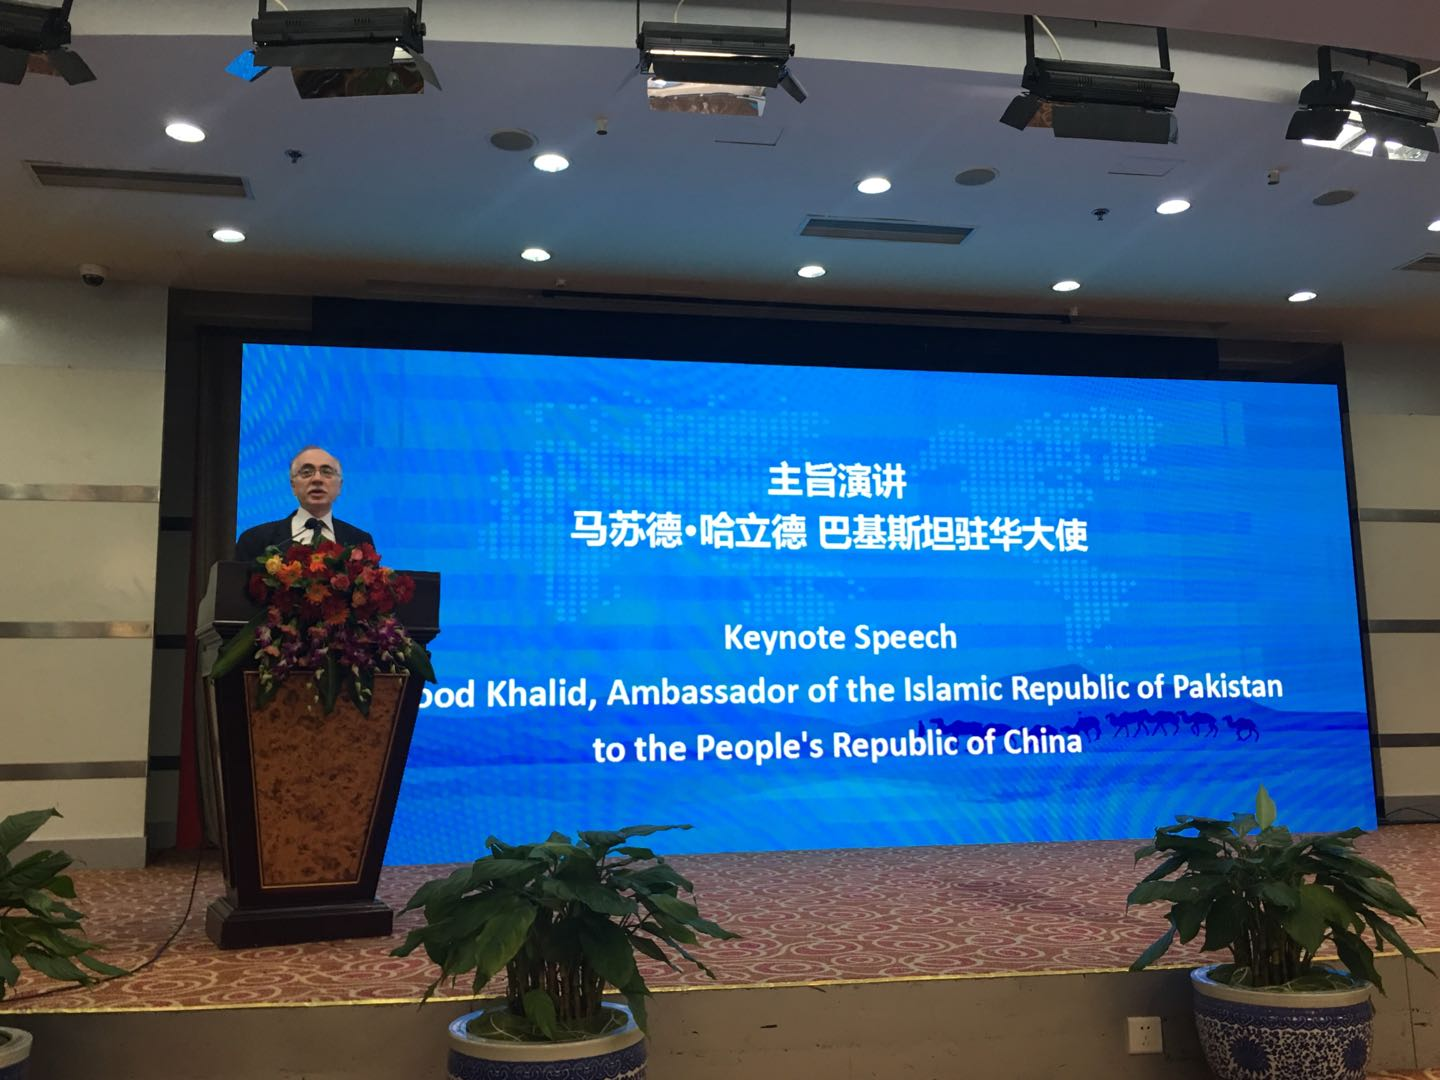 Masood Khalid, Ambassador of the Islamic Republic of Pakistan to the People's Republic of China speaks at 2018 Belt and Road International Forum held in Beijing. (Xinhua)